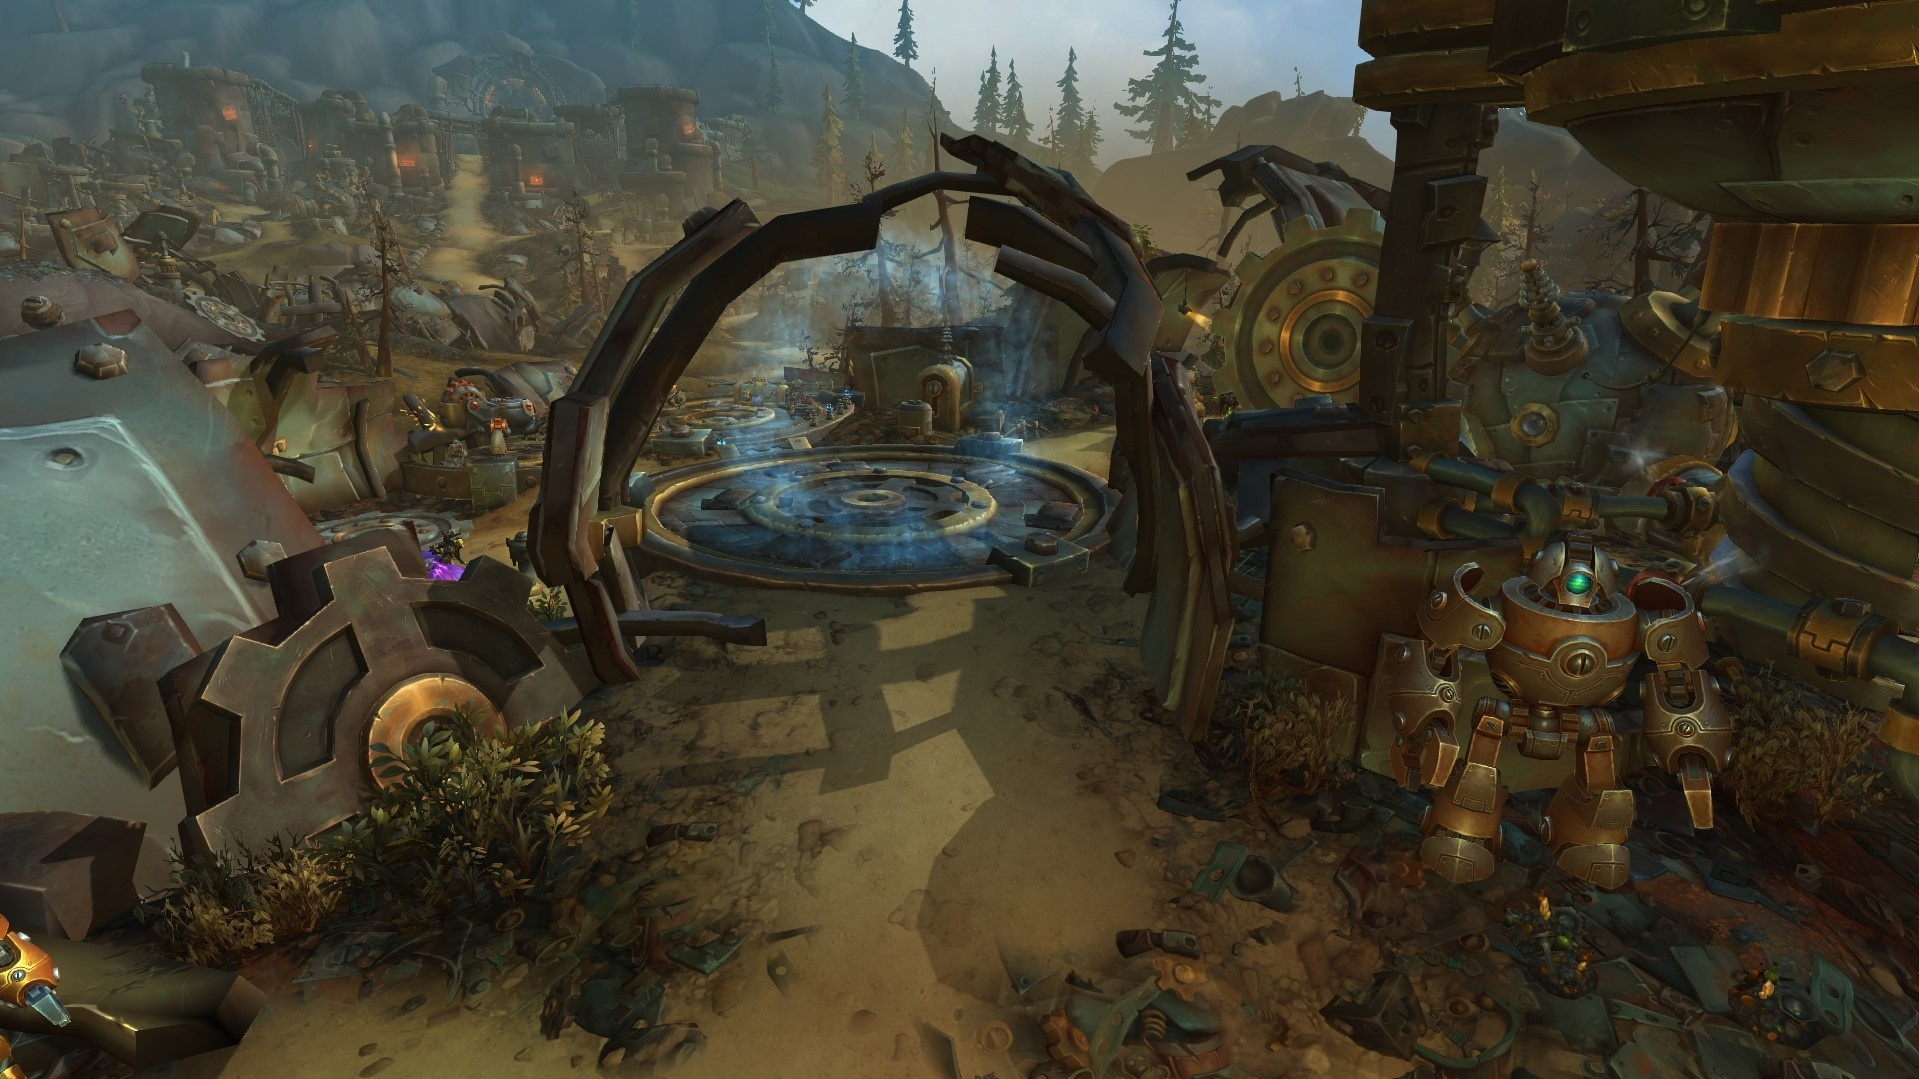 Battle For Azeroth Dungeon Overview - Guides - Wowhead